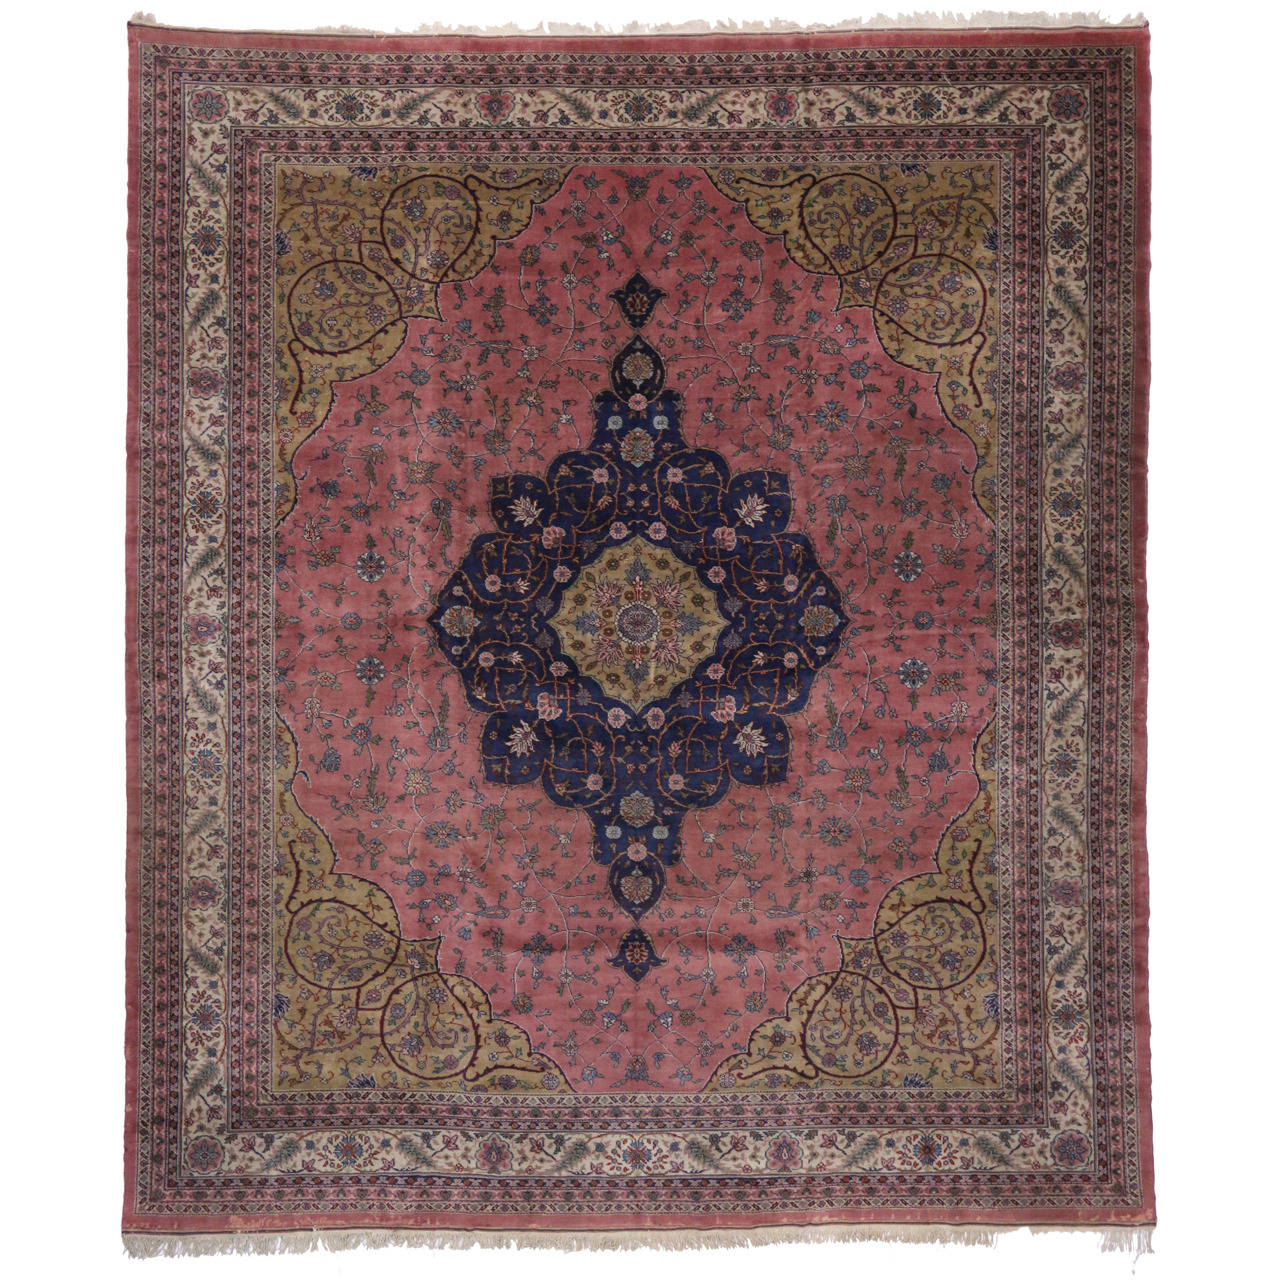 Antique Turkish Sparta Rug With Arabesque Art Nouveau Style 1